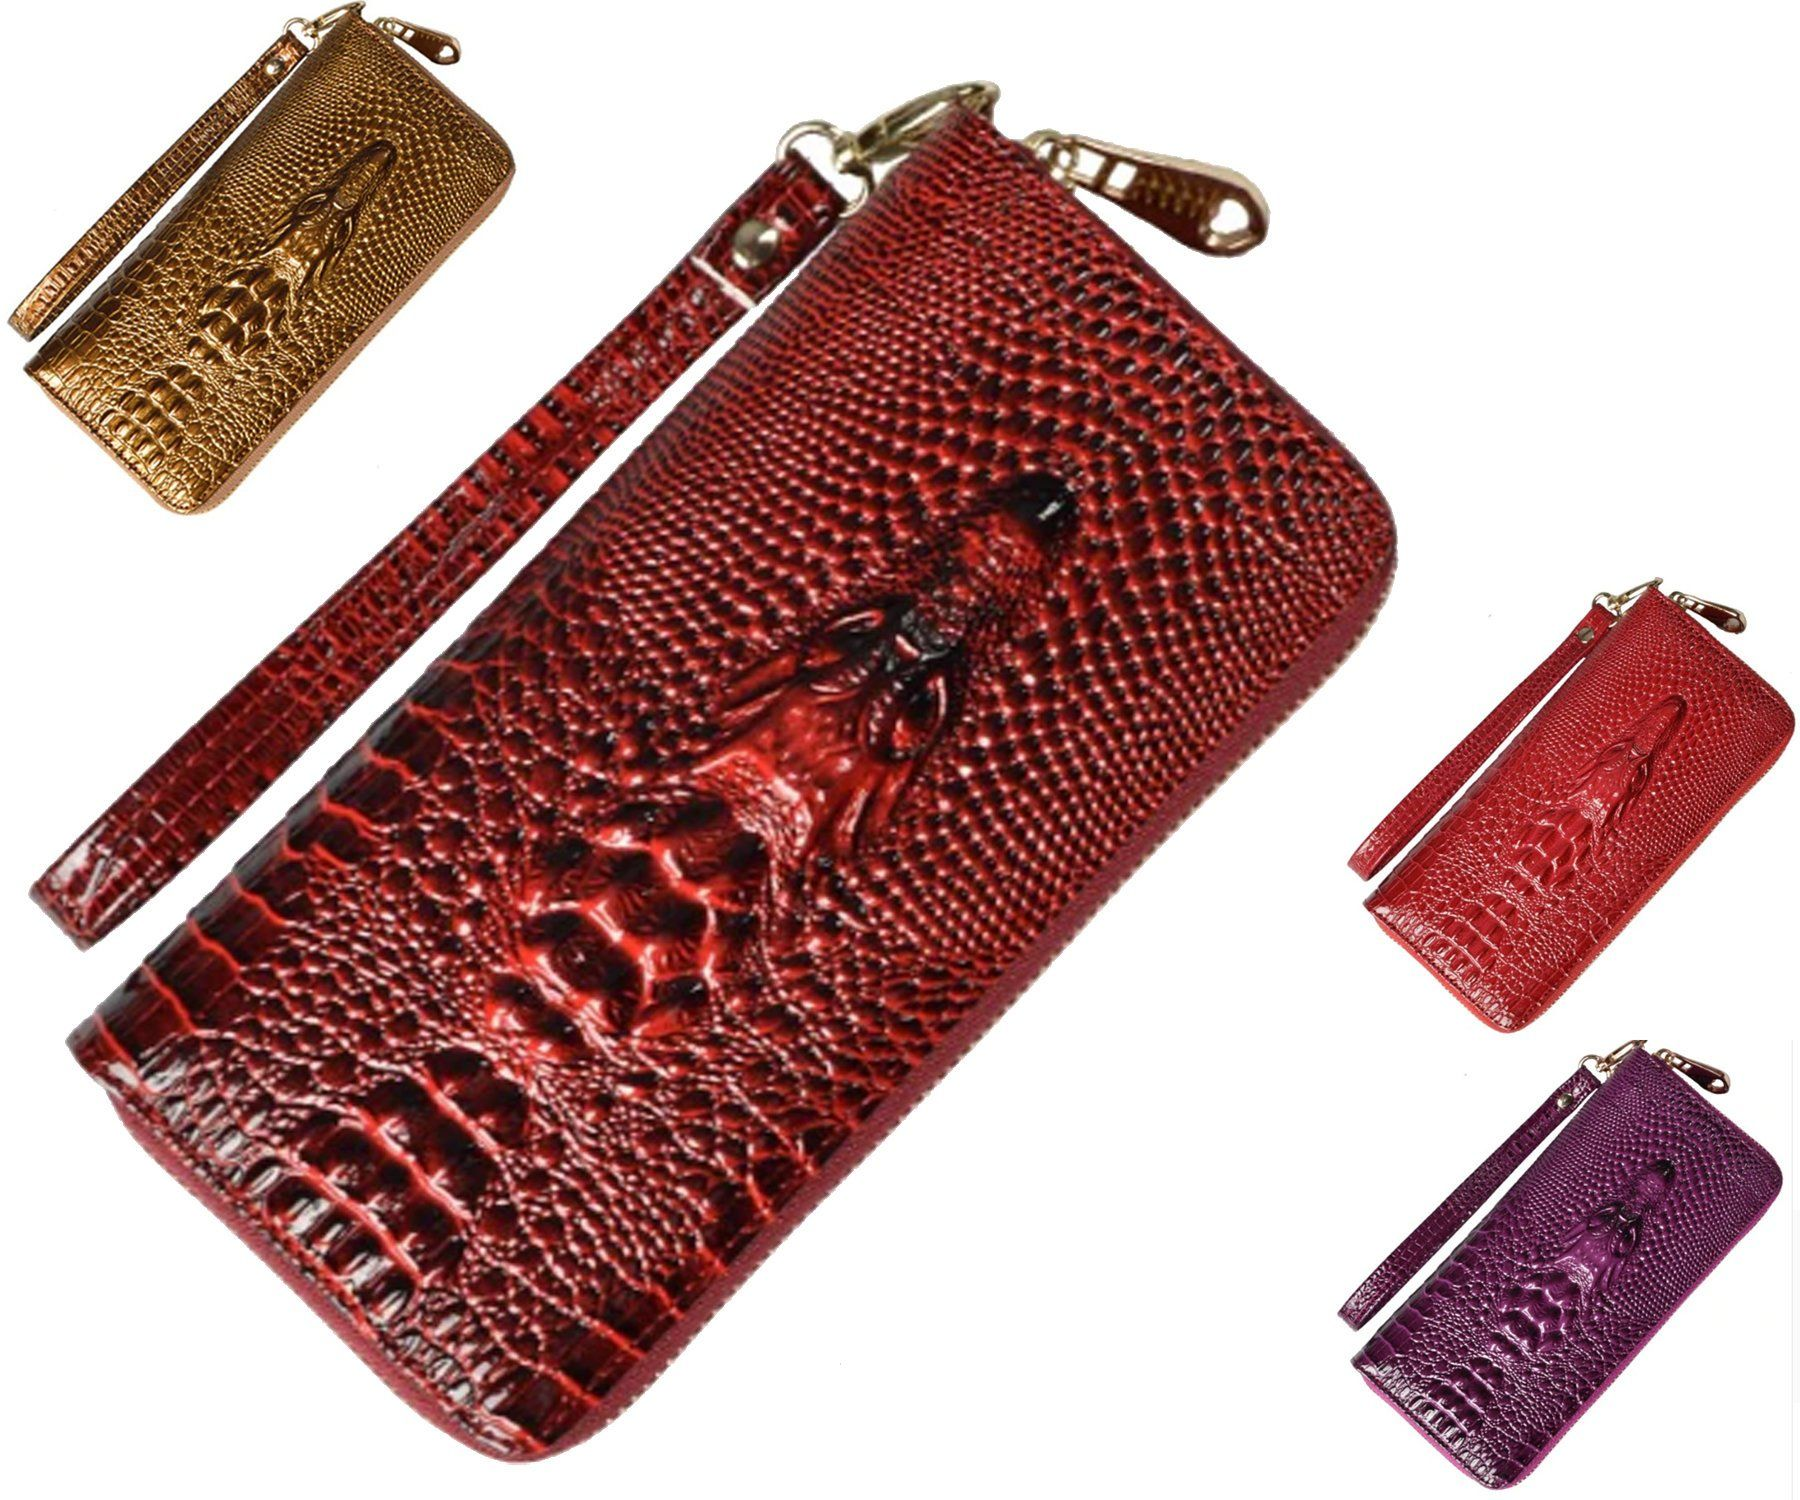 Embossed Leather Wallet With Detachable Strap Crocodile Embossed Wallet Card Holder Coin Purse Long Womens Wallets With Wristlet By Welovemgift On Etsy